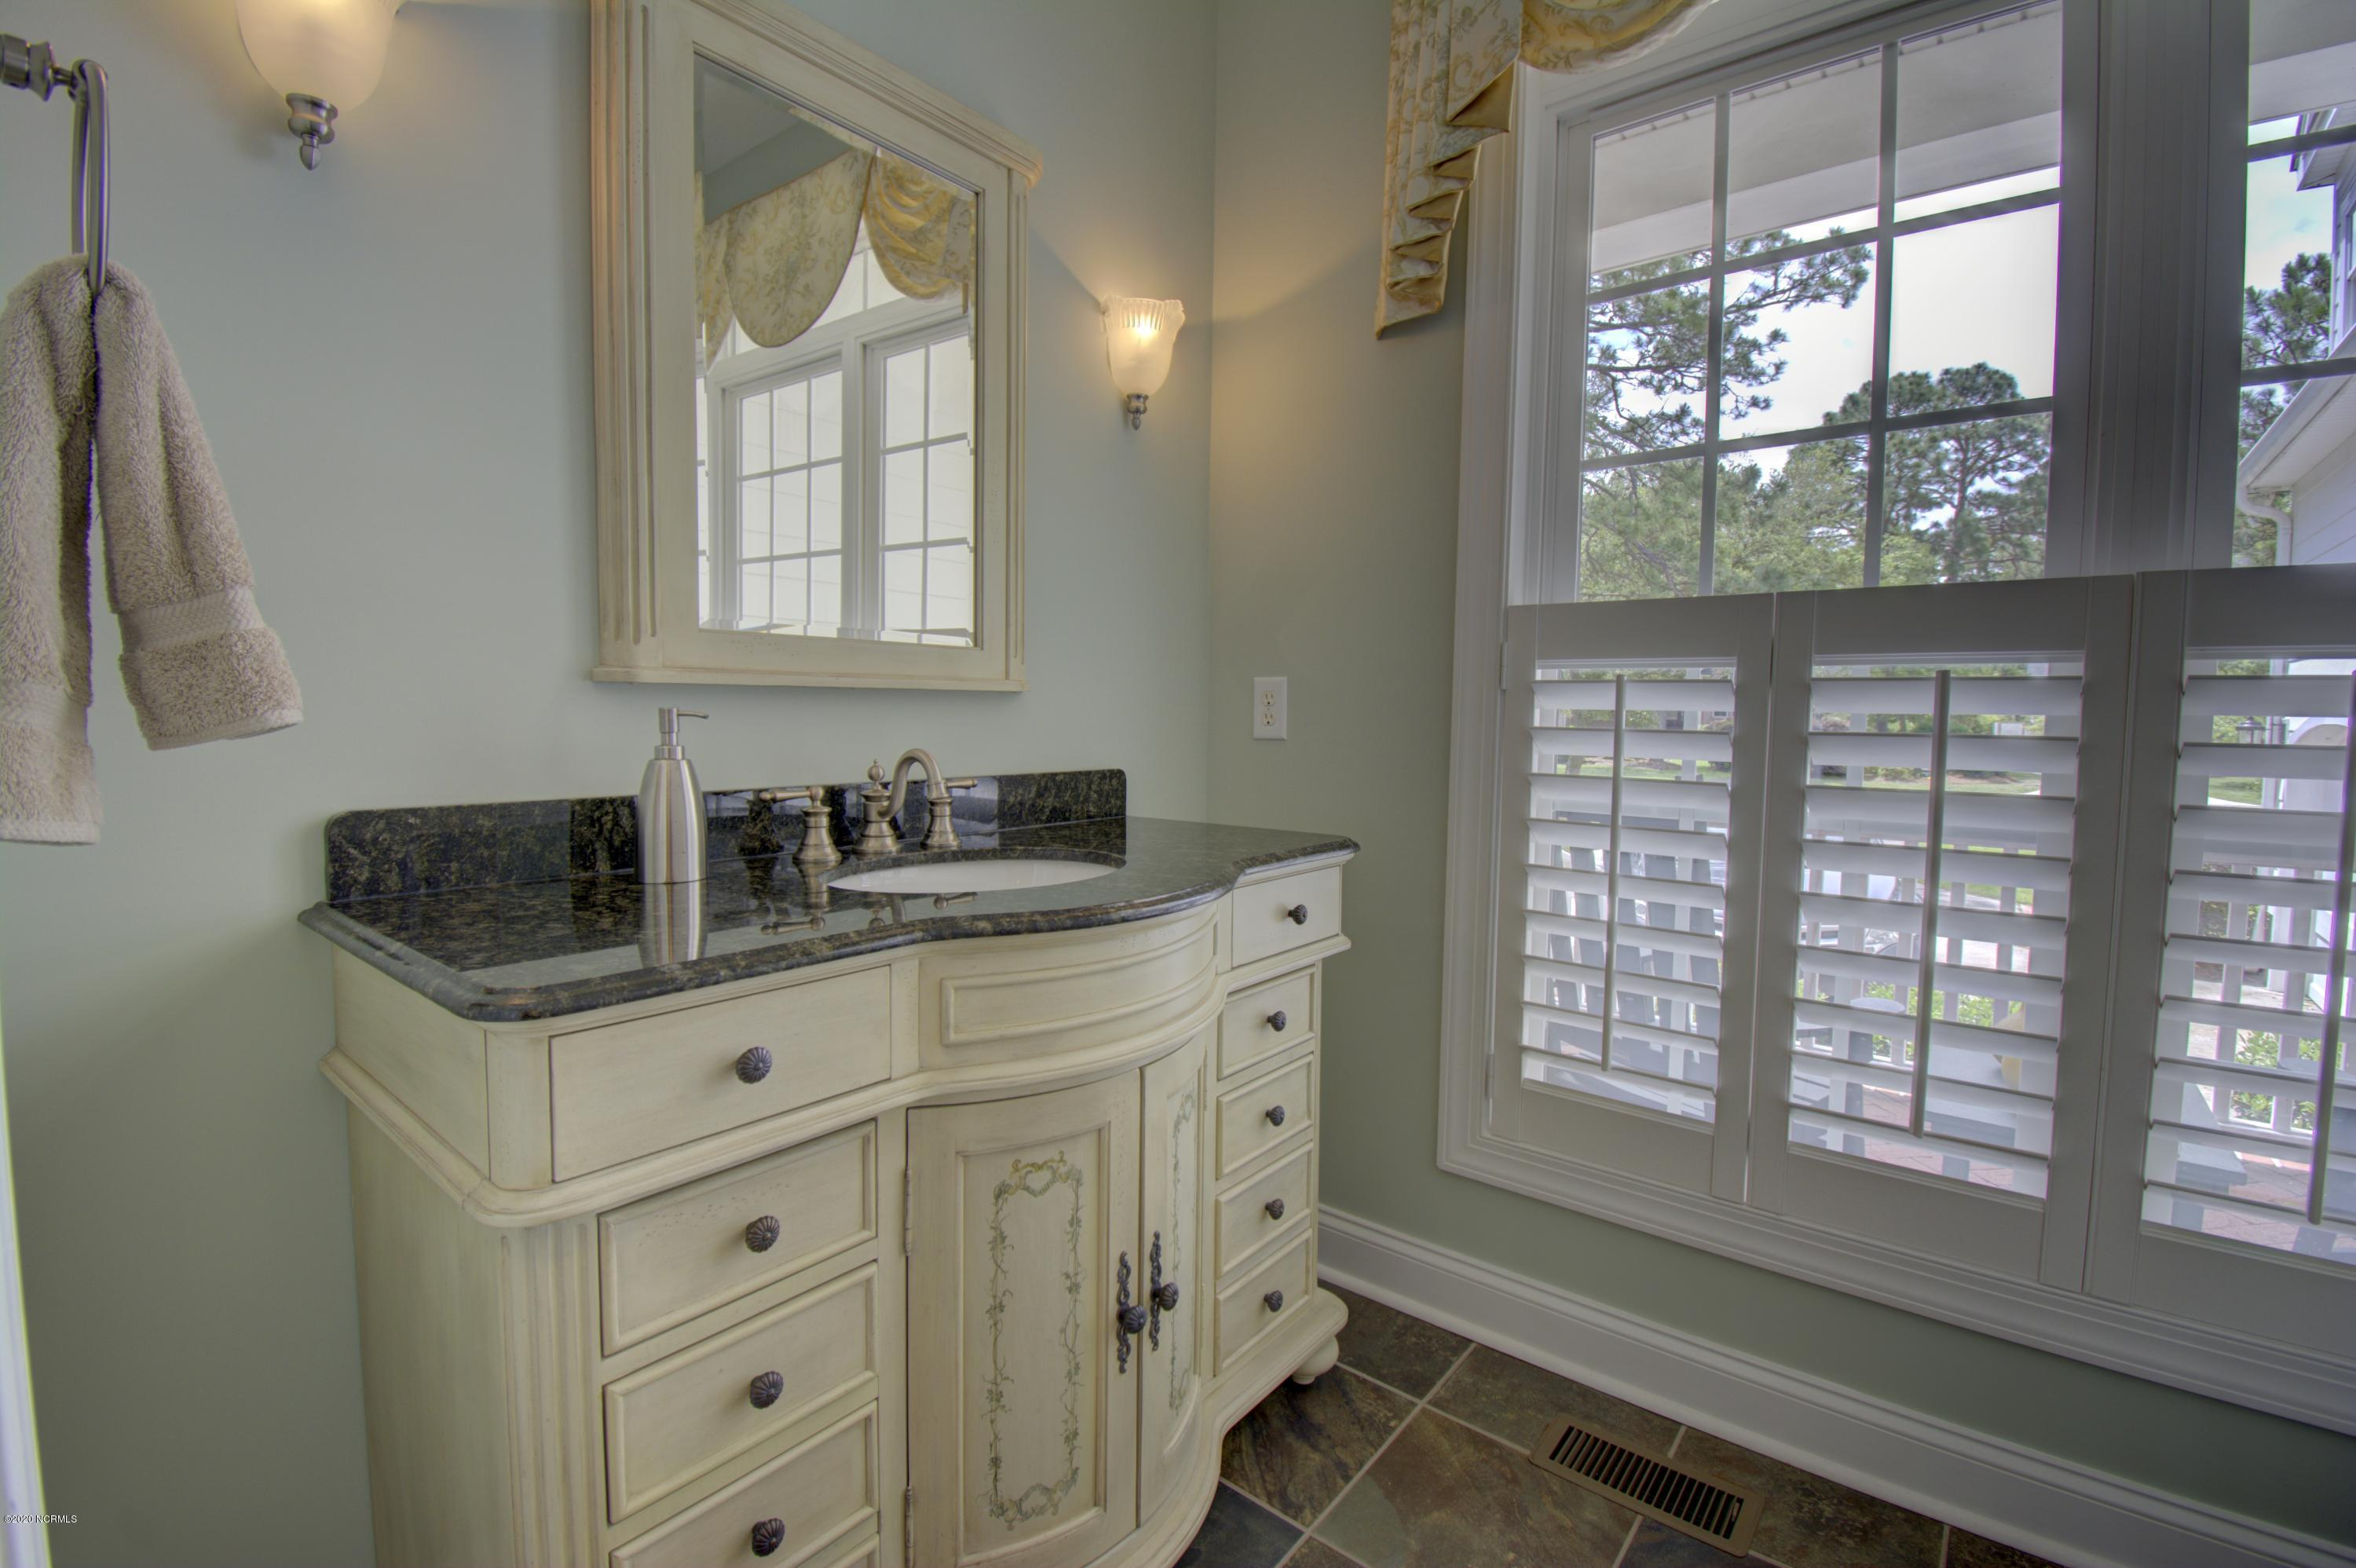 2632 St James Drive, Southport, North Carolina 28461, 3 Bedrooms Bedrooms, 10 Rooms Rooms,3 BathroomsBathrooms,Single family residence,For sale,St James,100218576